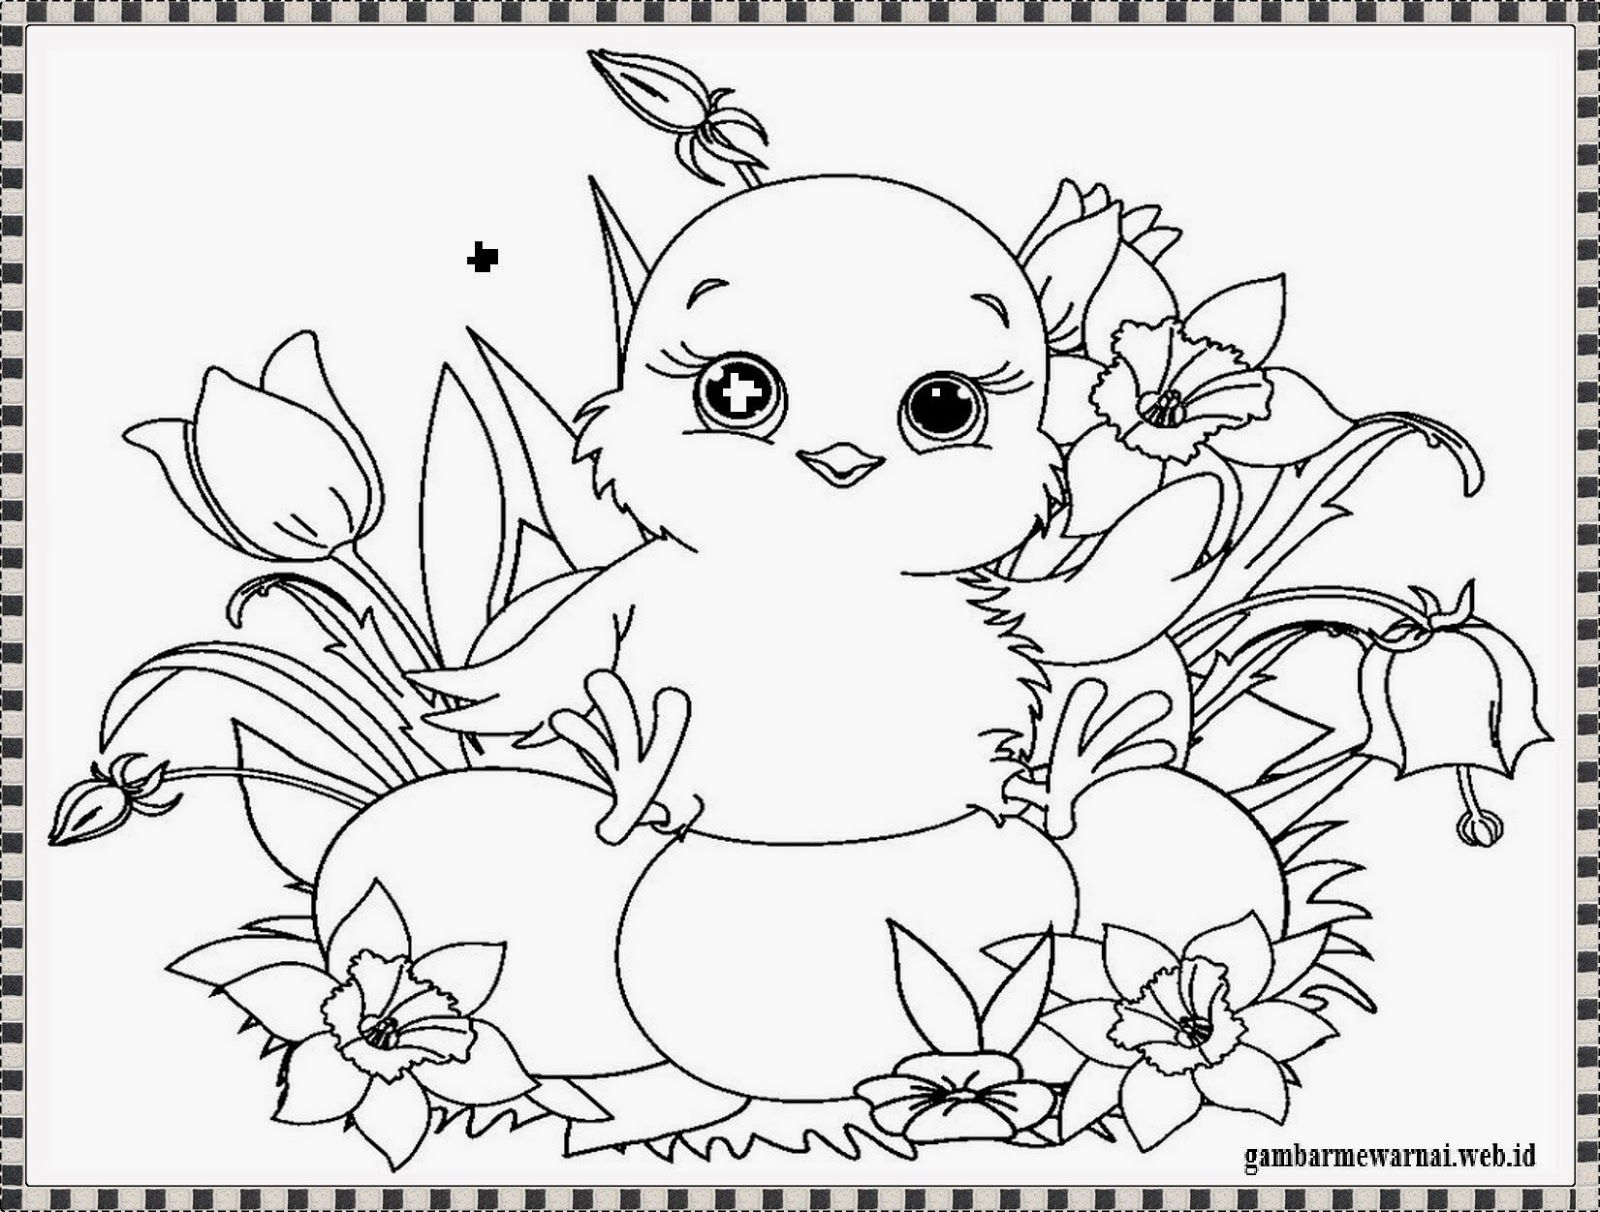 55 Best Gambar Mewarnai Images Coloring Pages Coloring Pages